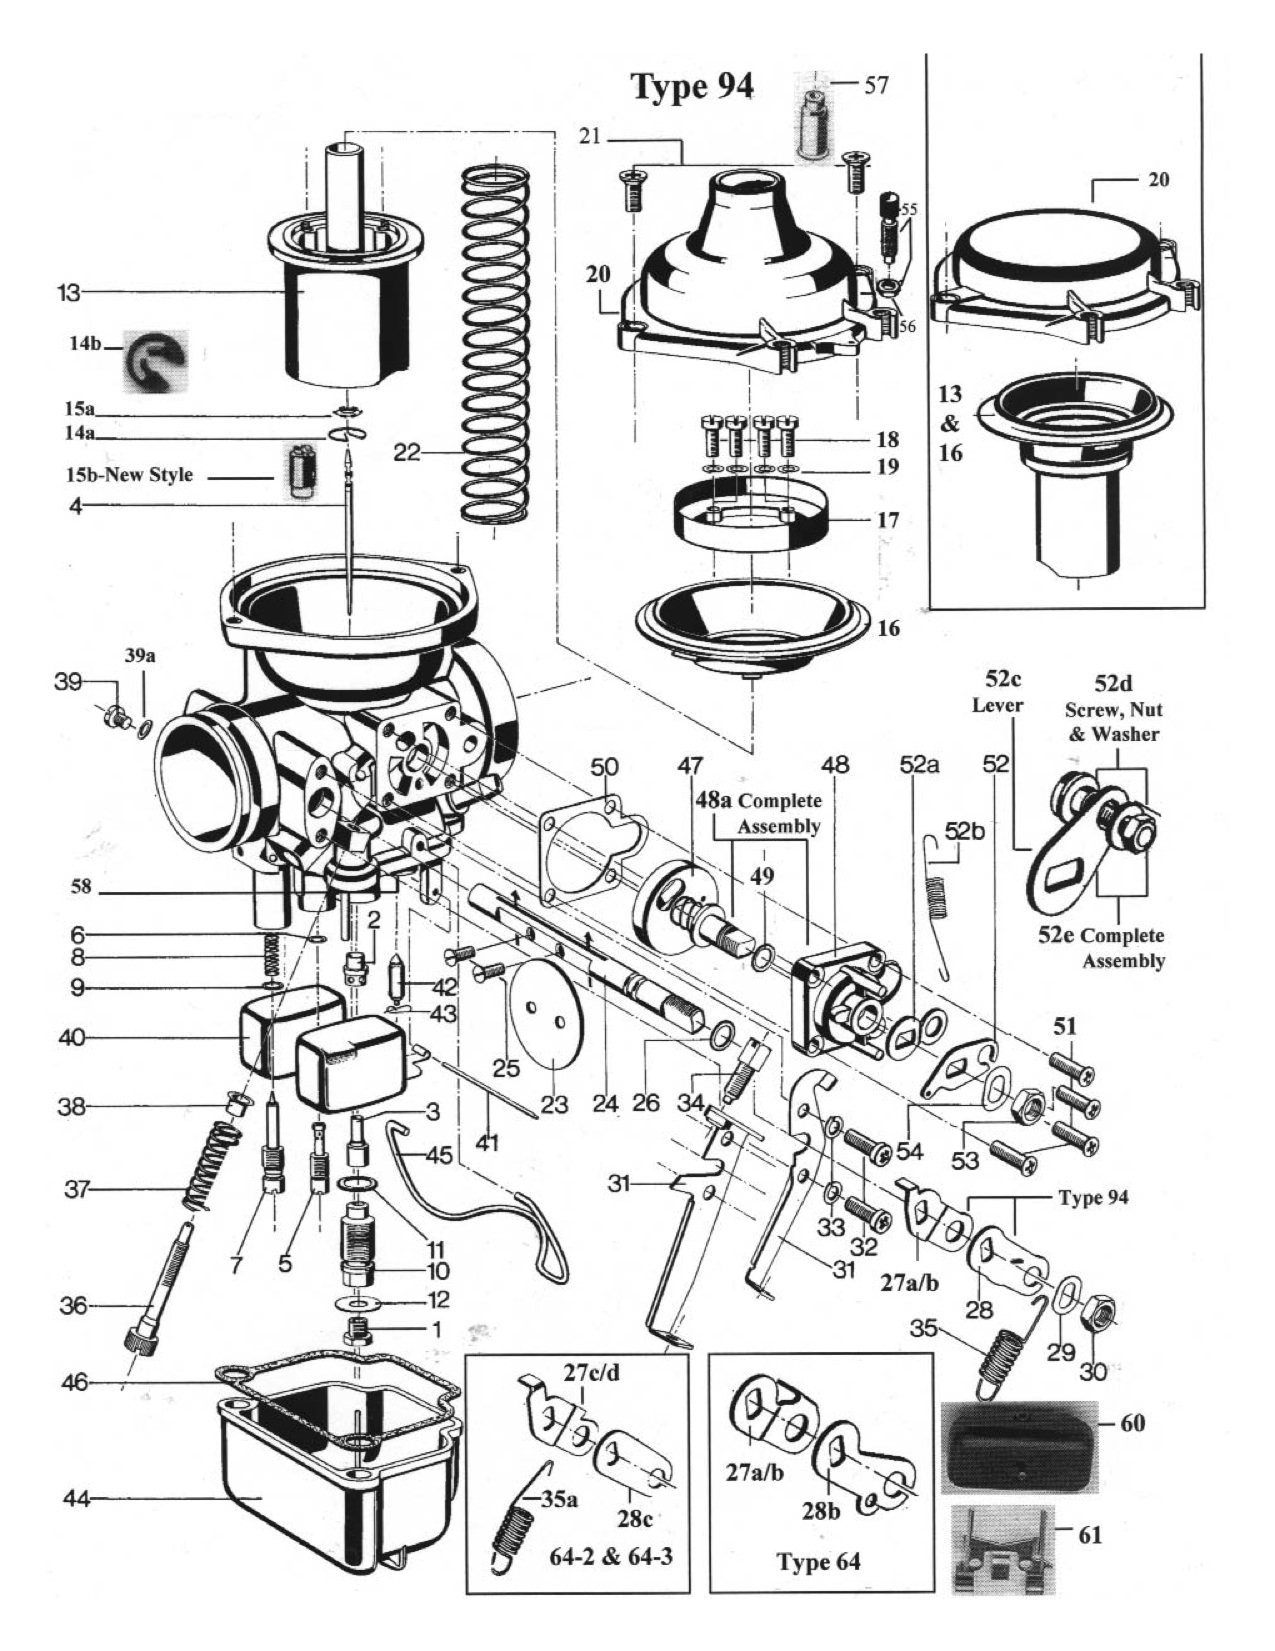 2000 arctic cat 300 wiring diagram   34 wiring diagram